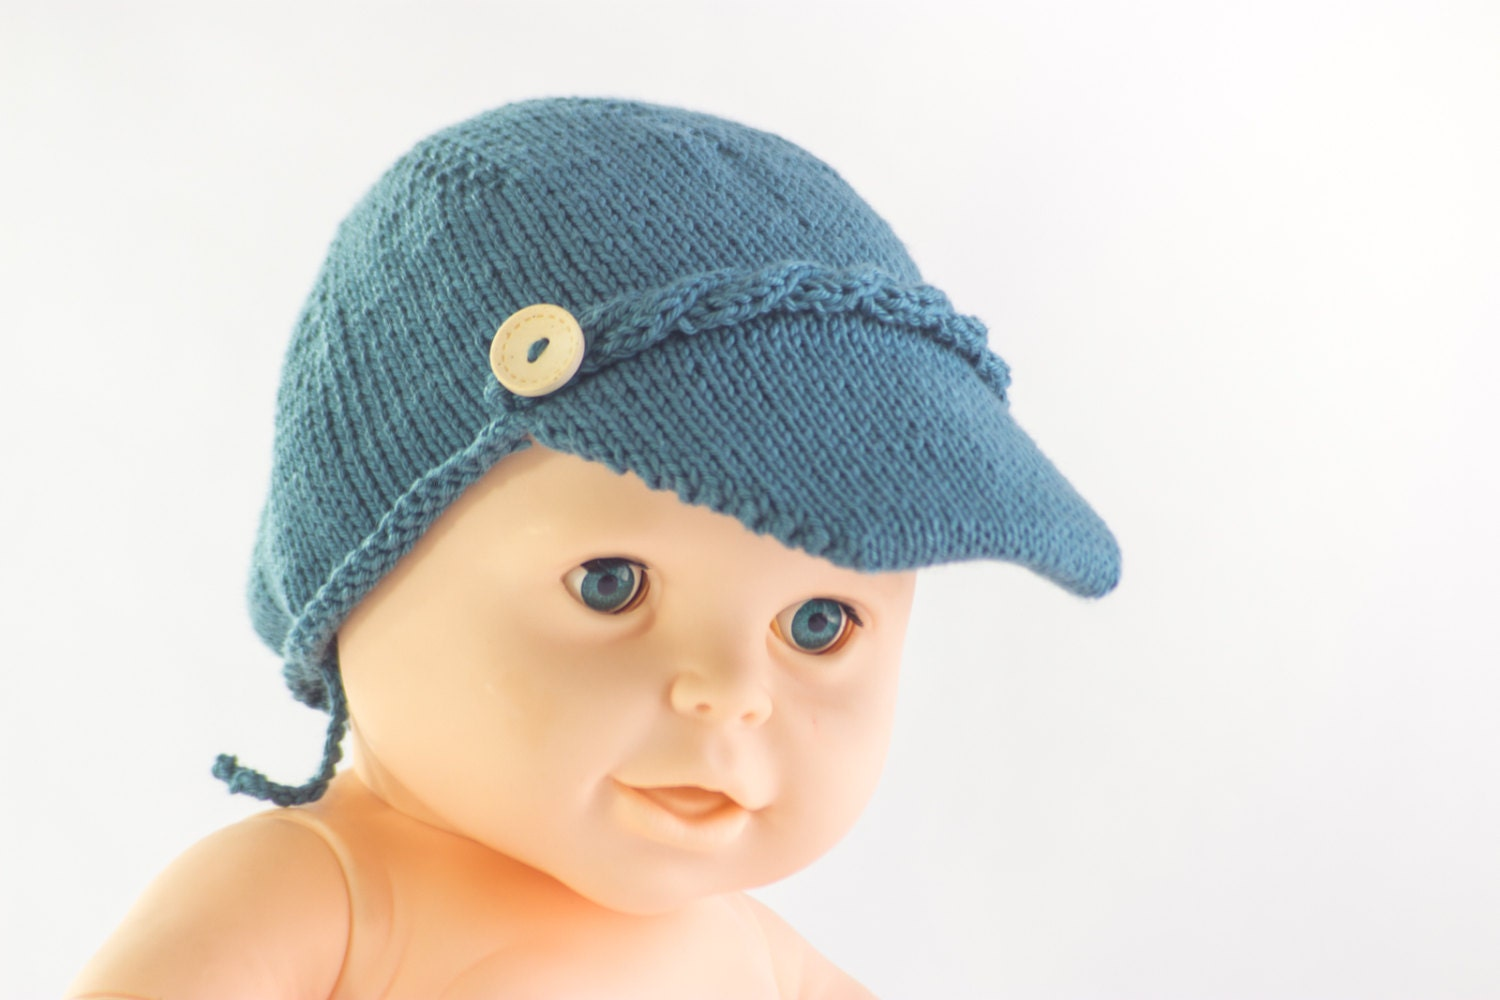 Knitting Pattern For Boys Hat : KNITTING PATTERN Boys Cap Brimmed Cap Baby Boy Hat Summer